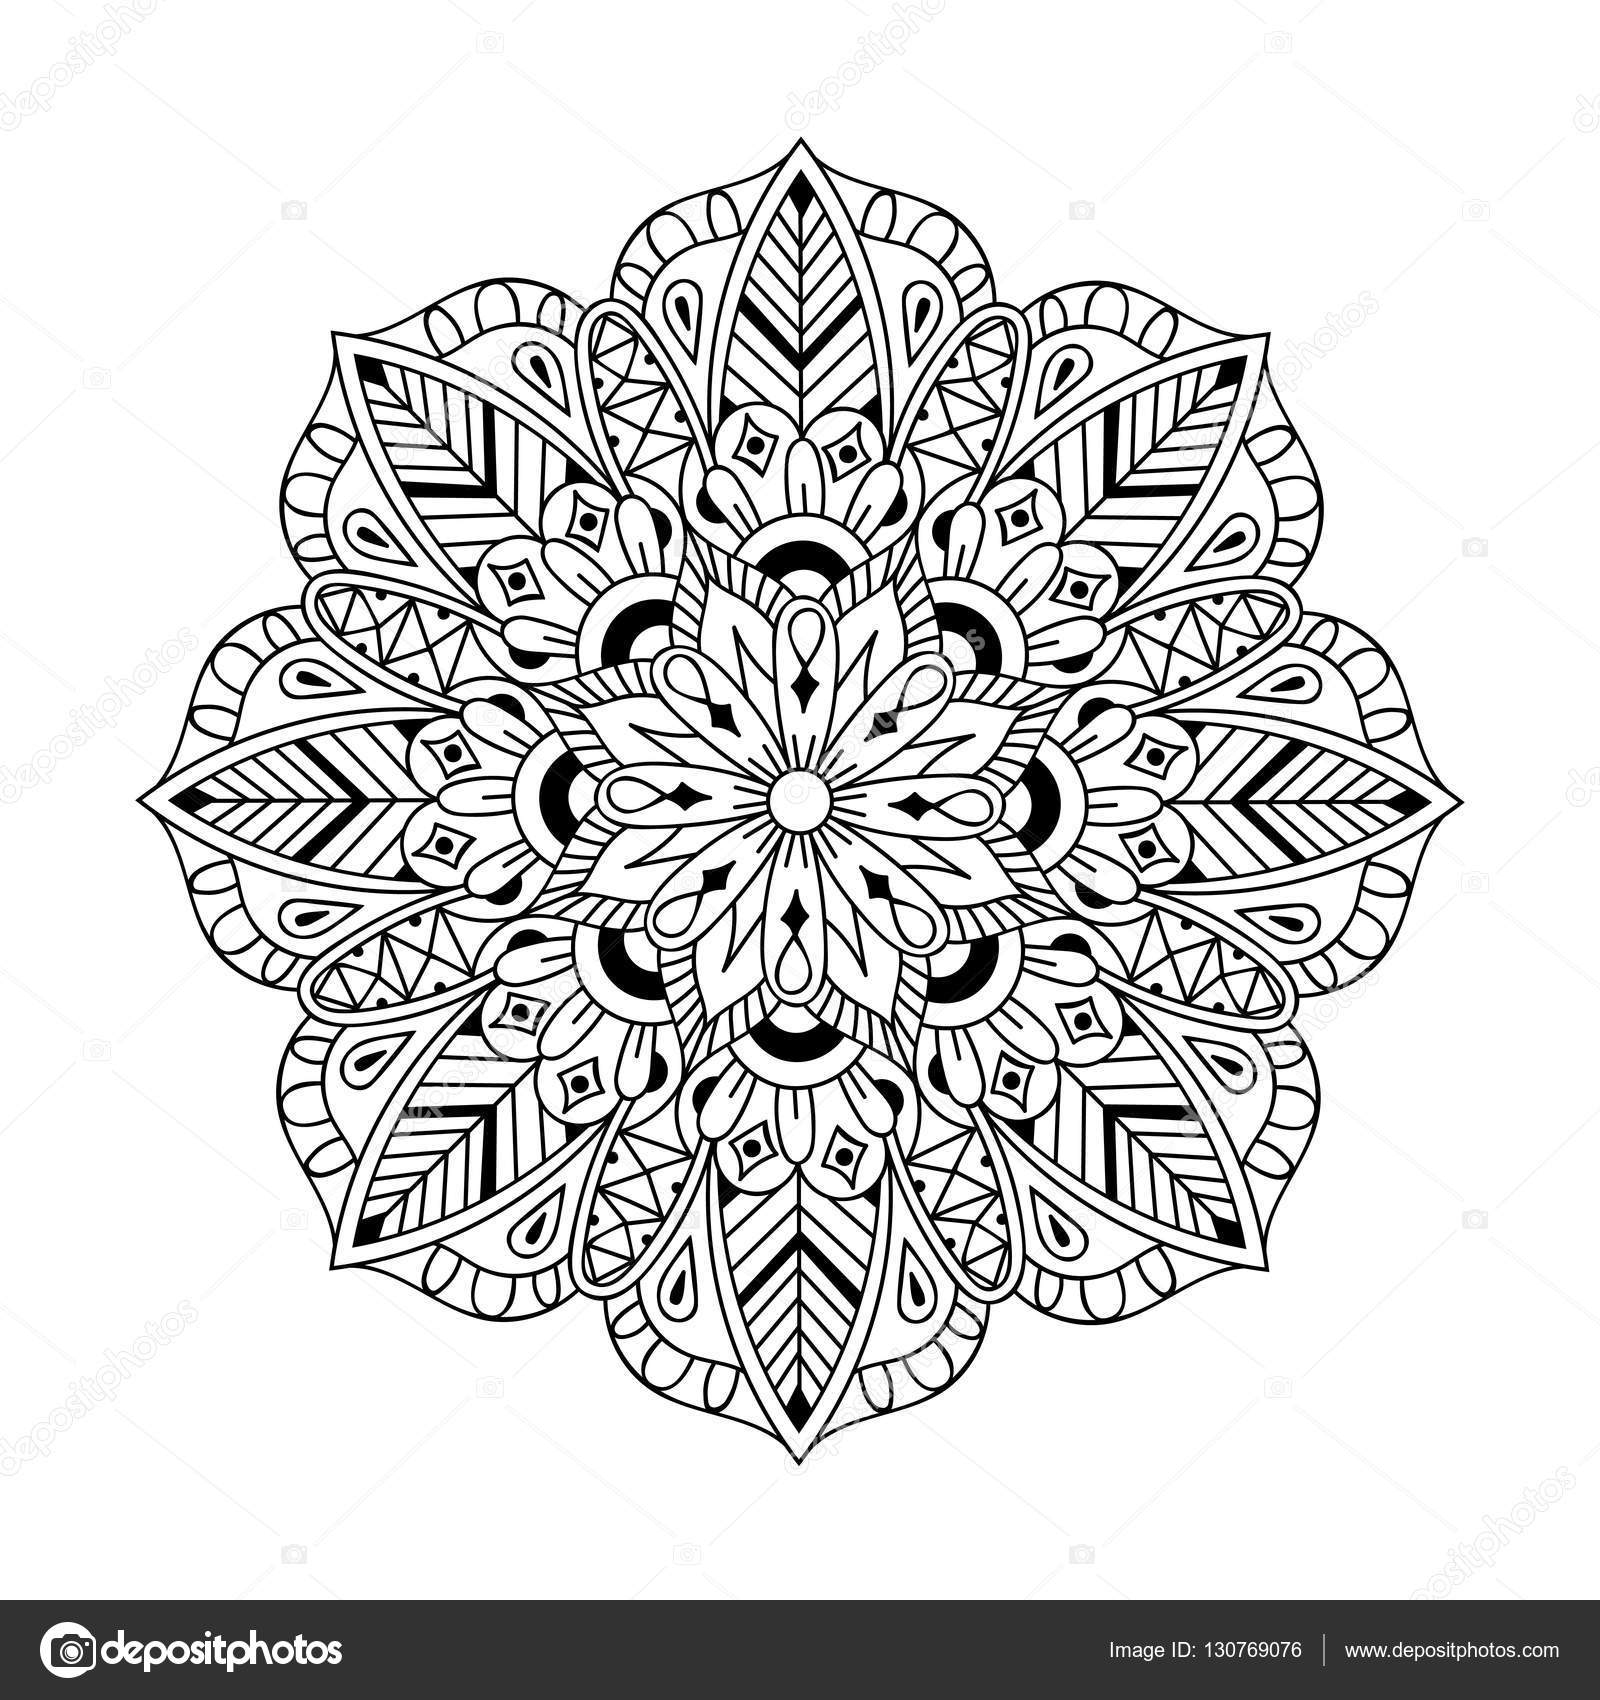 Zentangle Mandala In Monochrome Doodle Style Hand Drawn